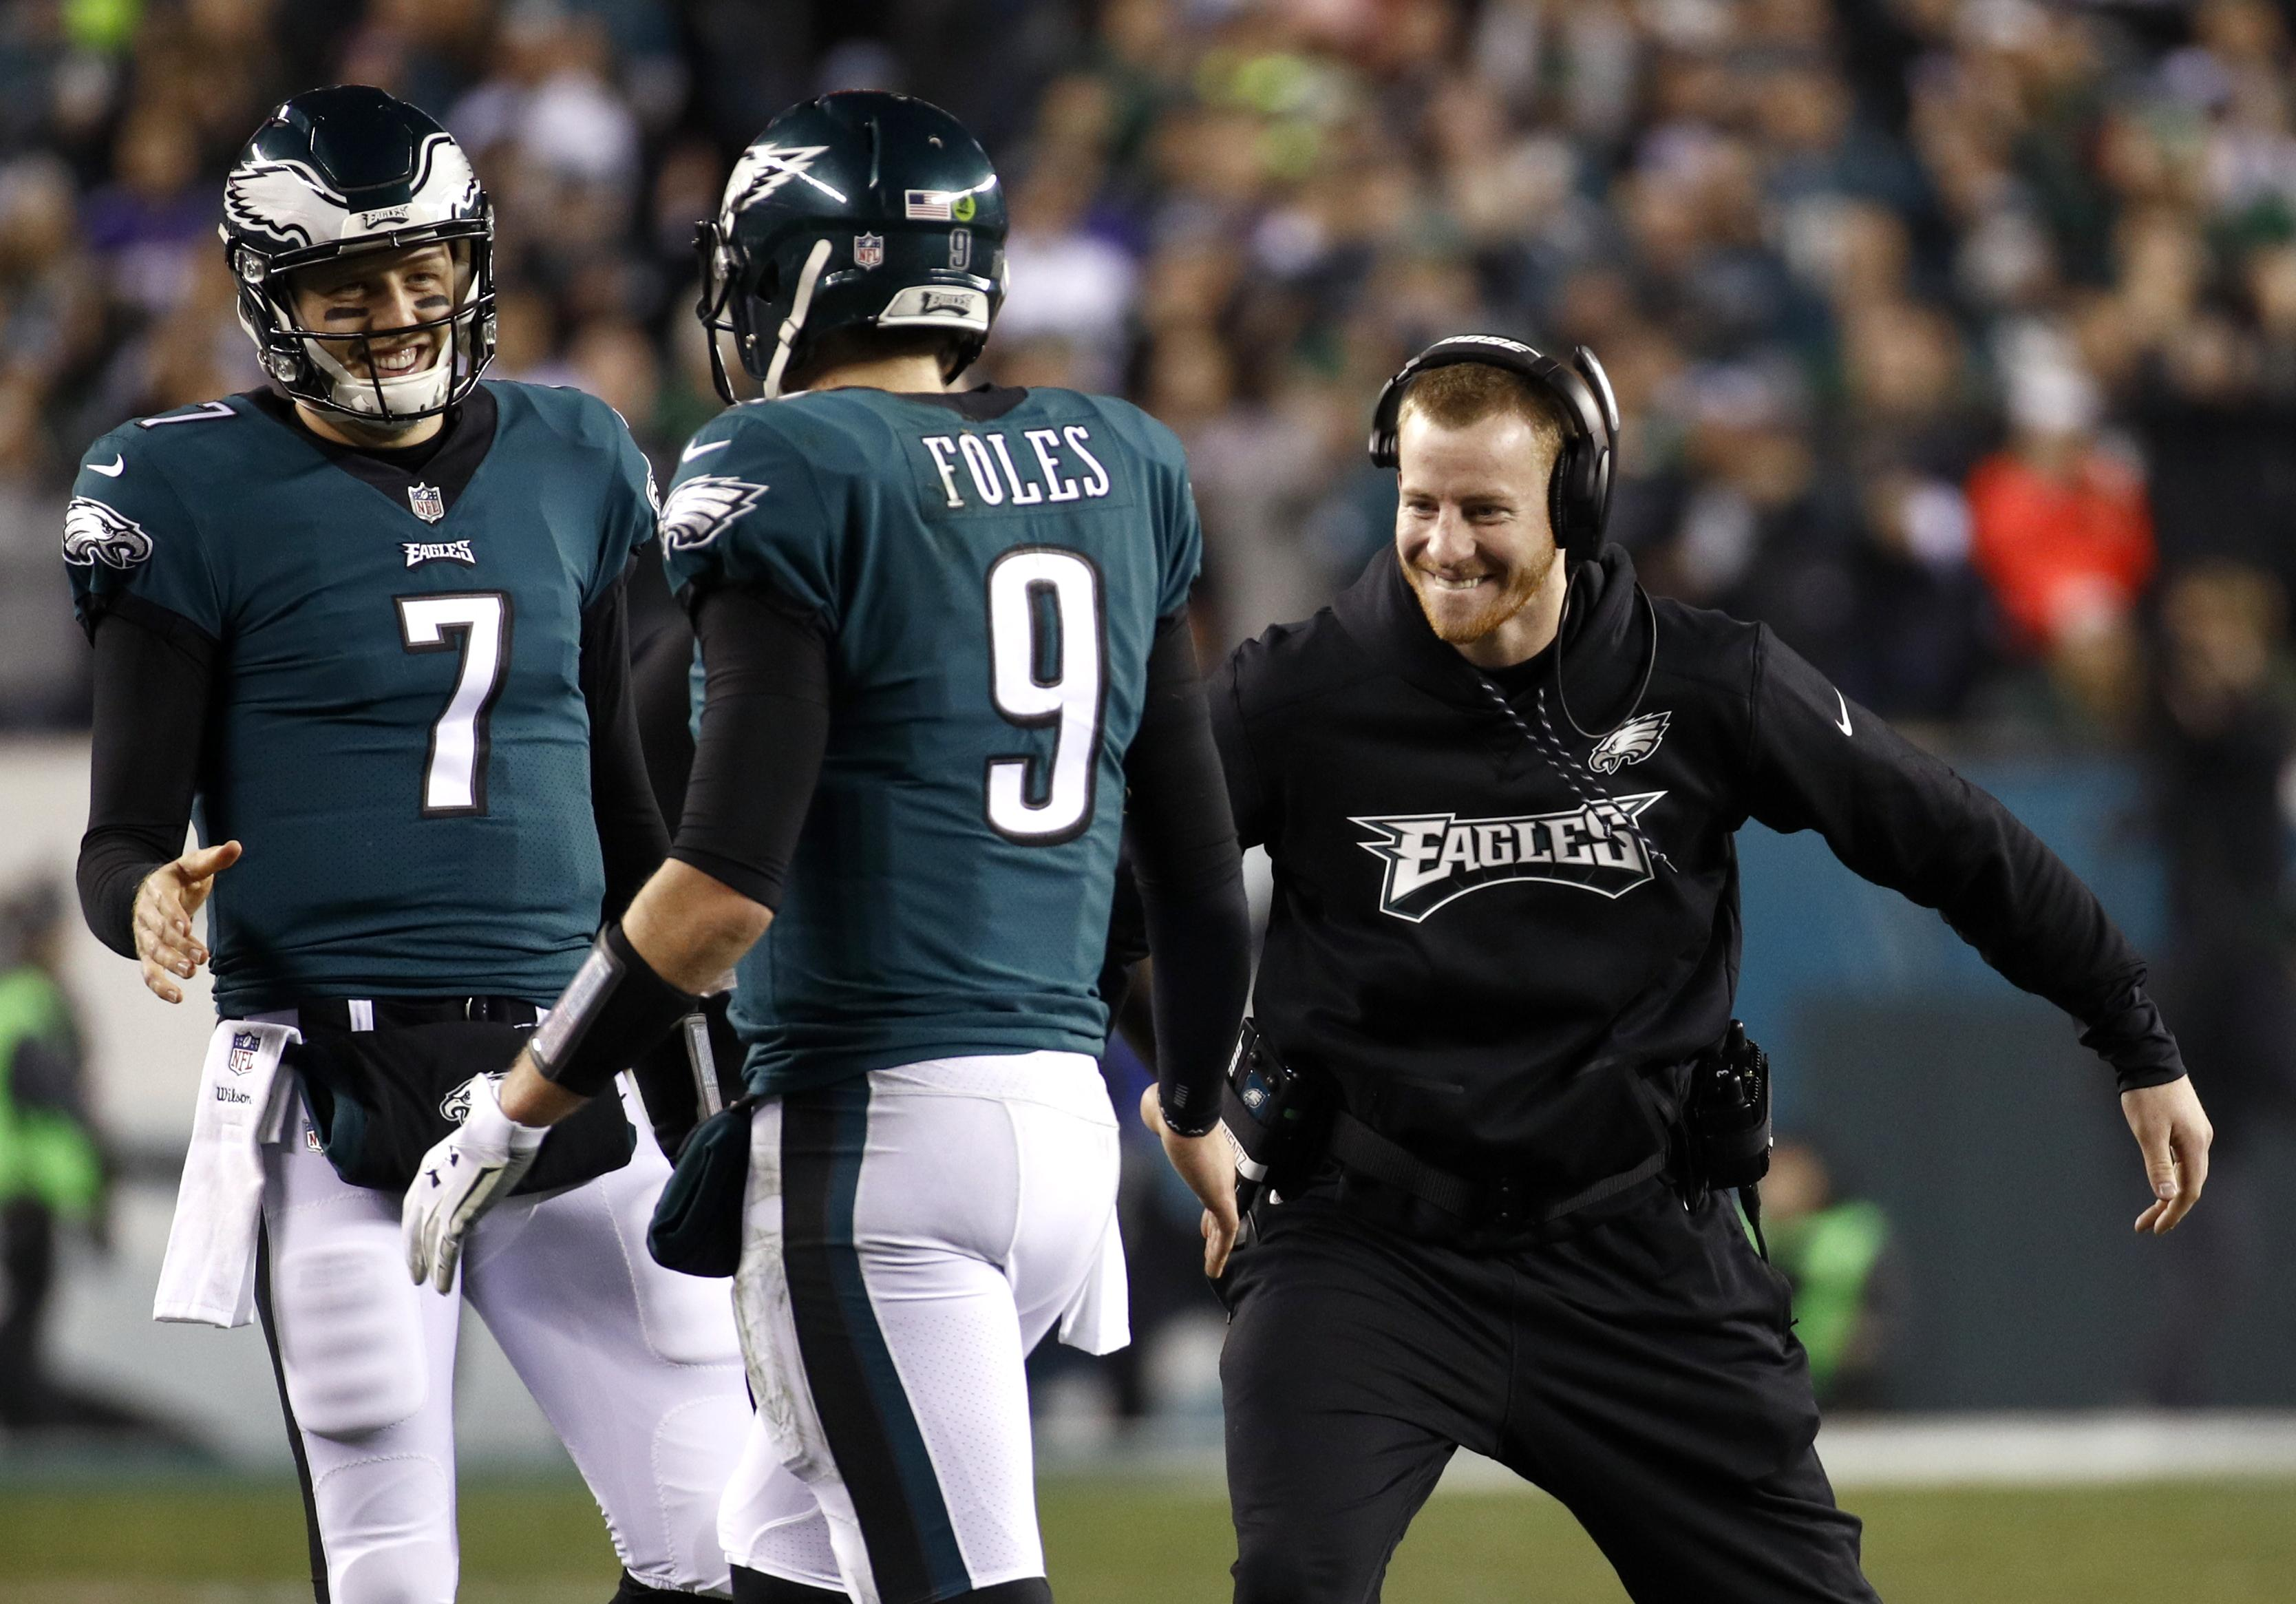 caf274a0669 Philadelphia's Carson Wentz congratulates Nick Foles during the second half  of the Eagles' NFC championship